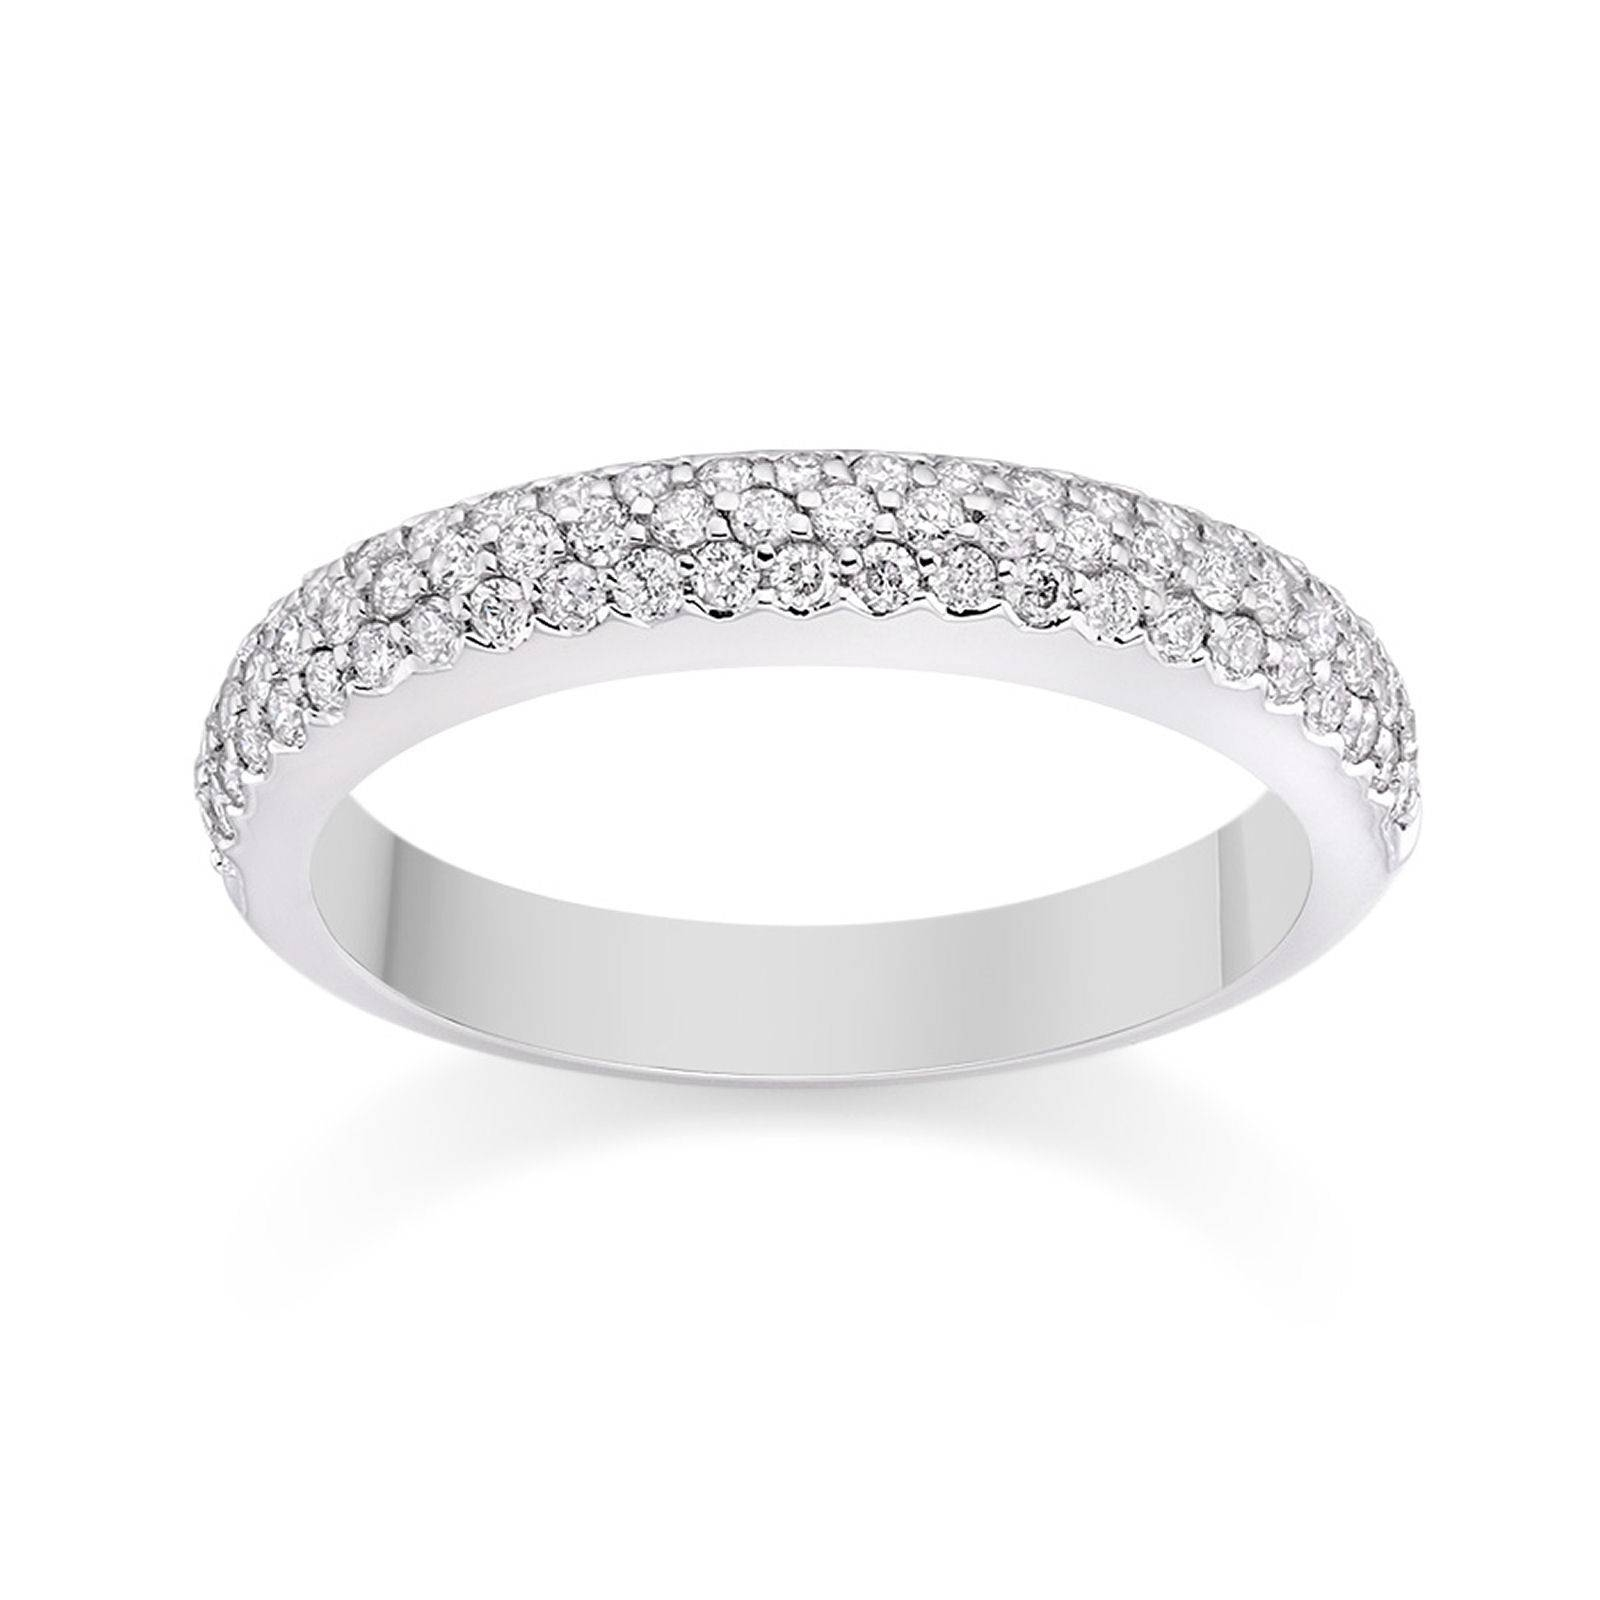 Pave Set Diamond Wedding Ring In 18K White Gold Wedding Dress From In Most Up To Date Pave Diamond Wedding Bands (View 10 of 15)